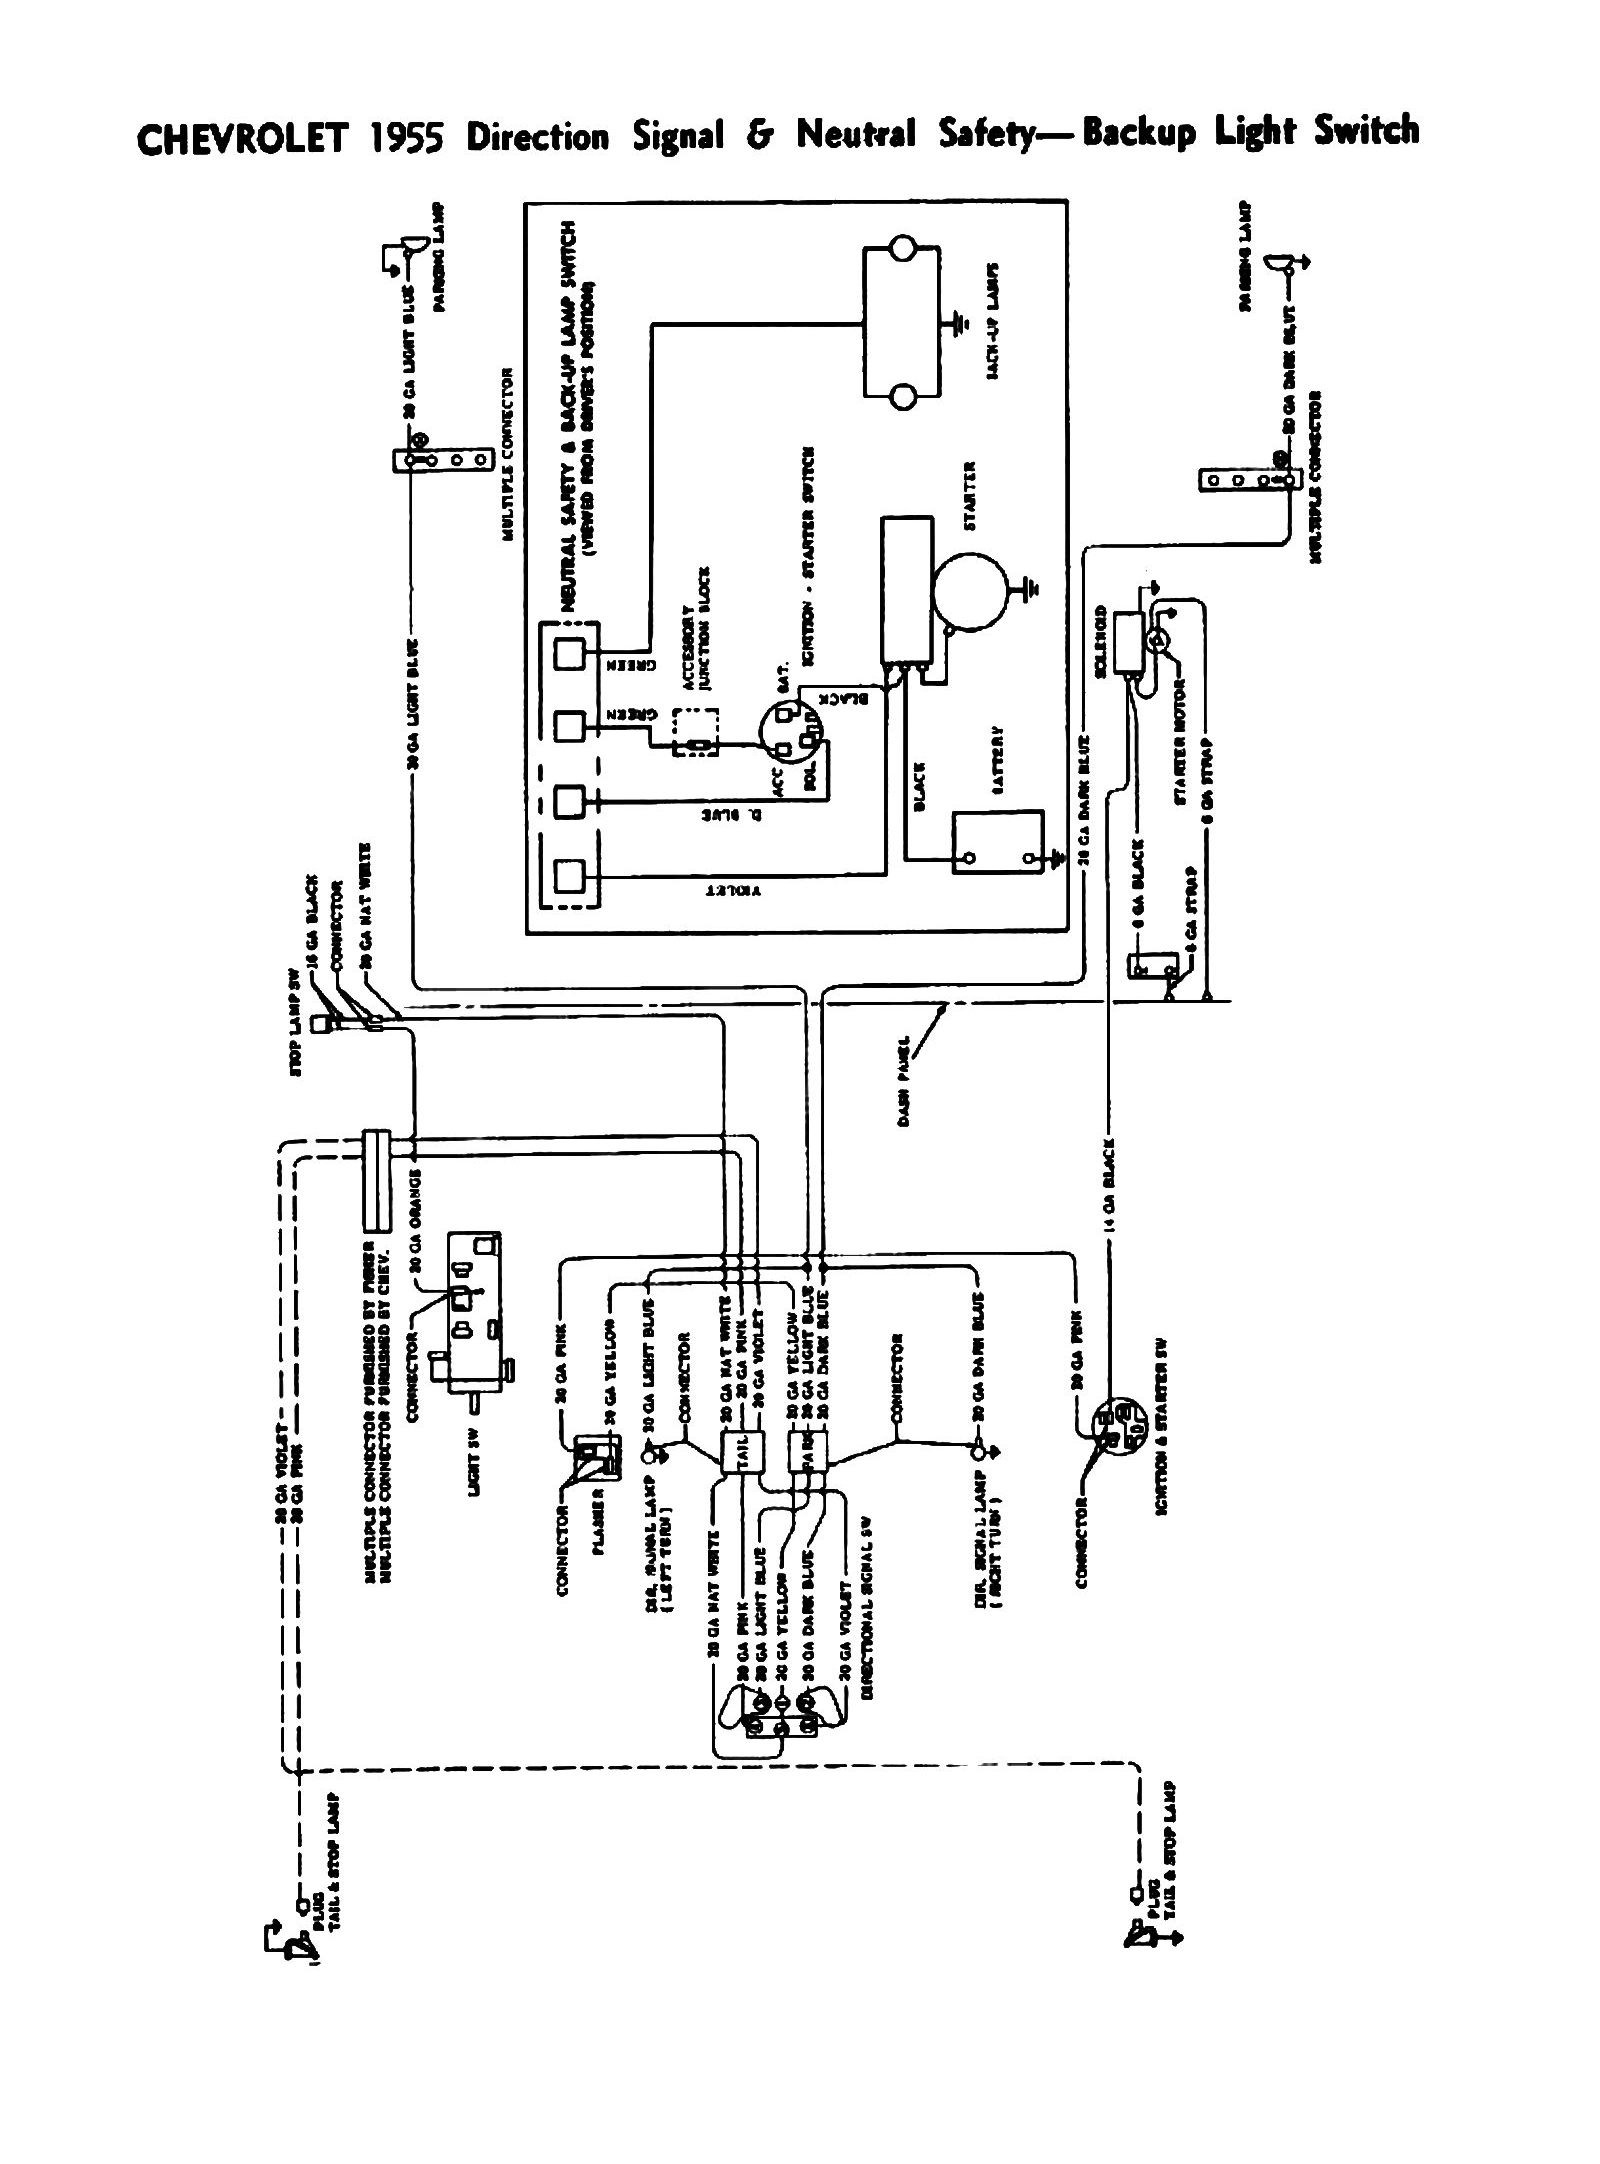 1956 chevy truck frame dimensions frameviewjdi org1948 chevy truck wiring diagram example electrical